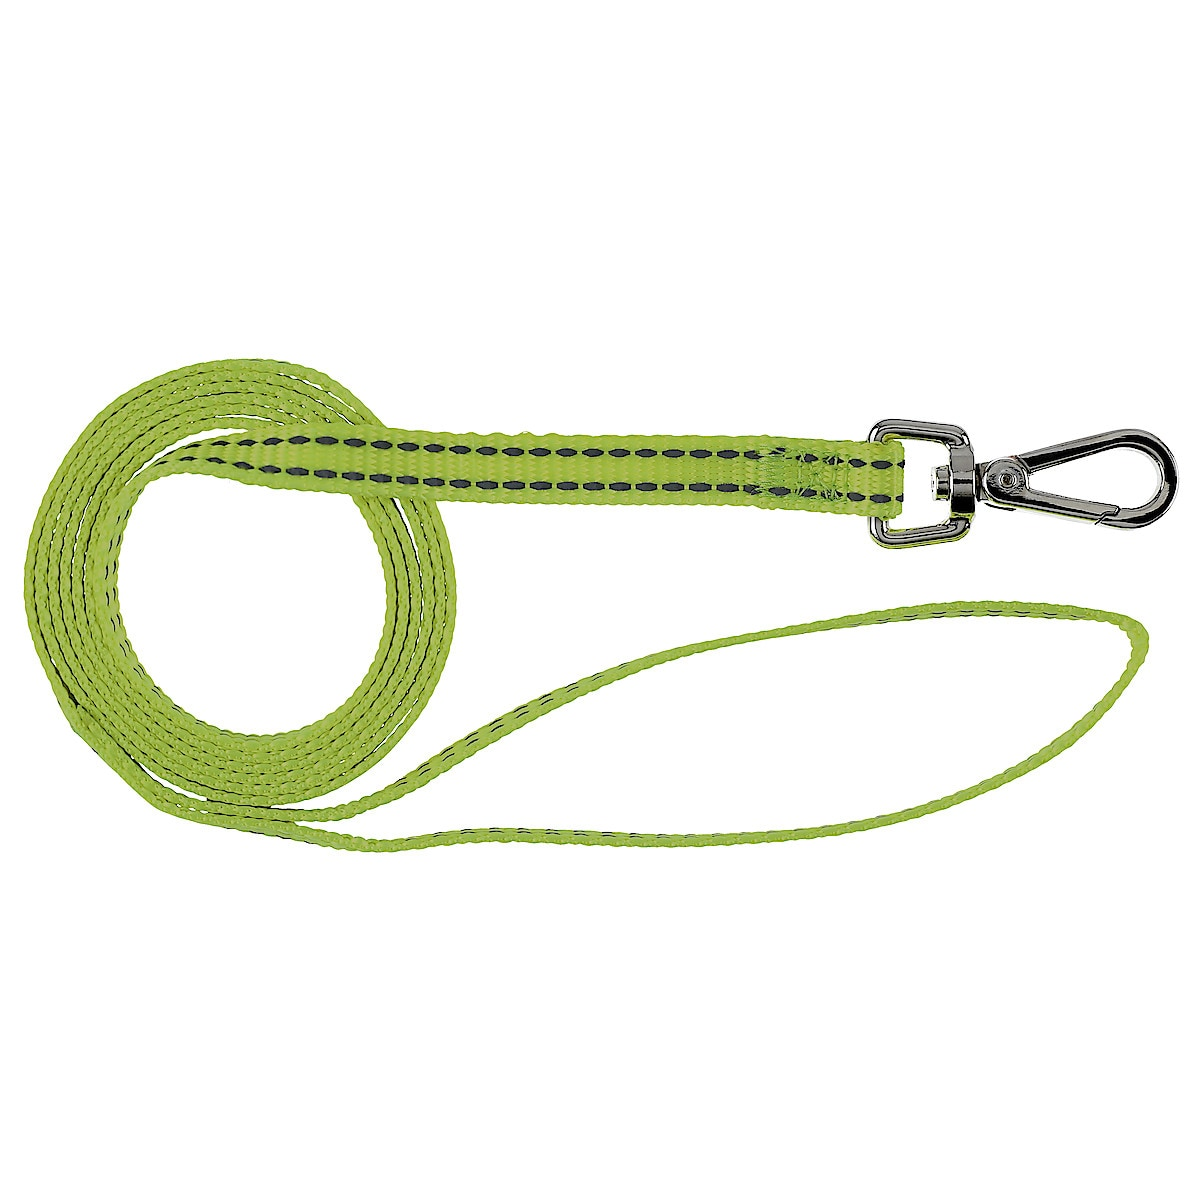 Small Dog Lead